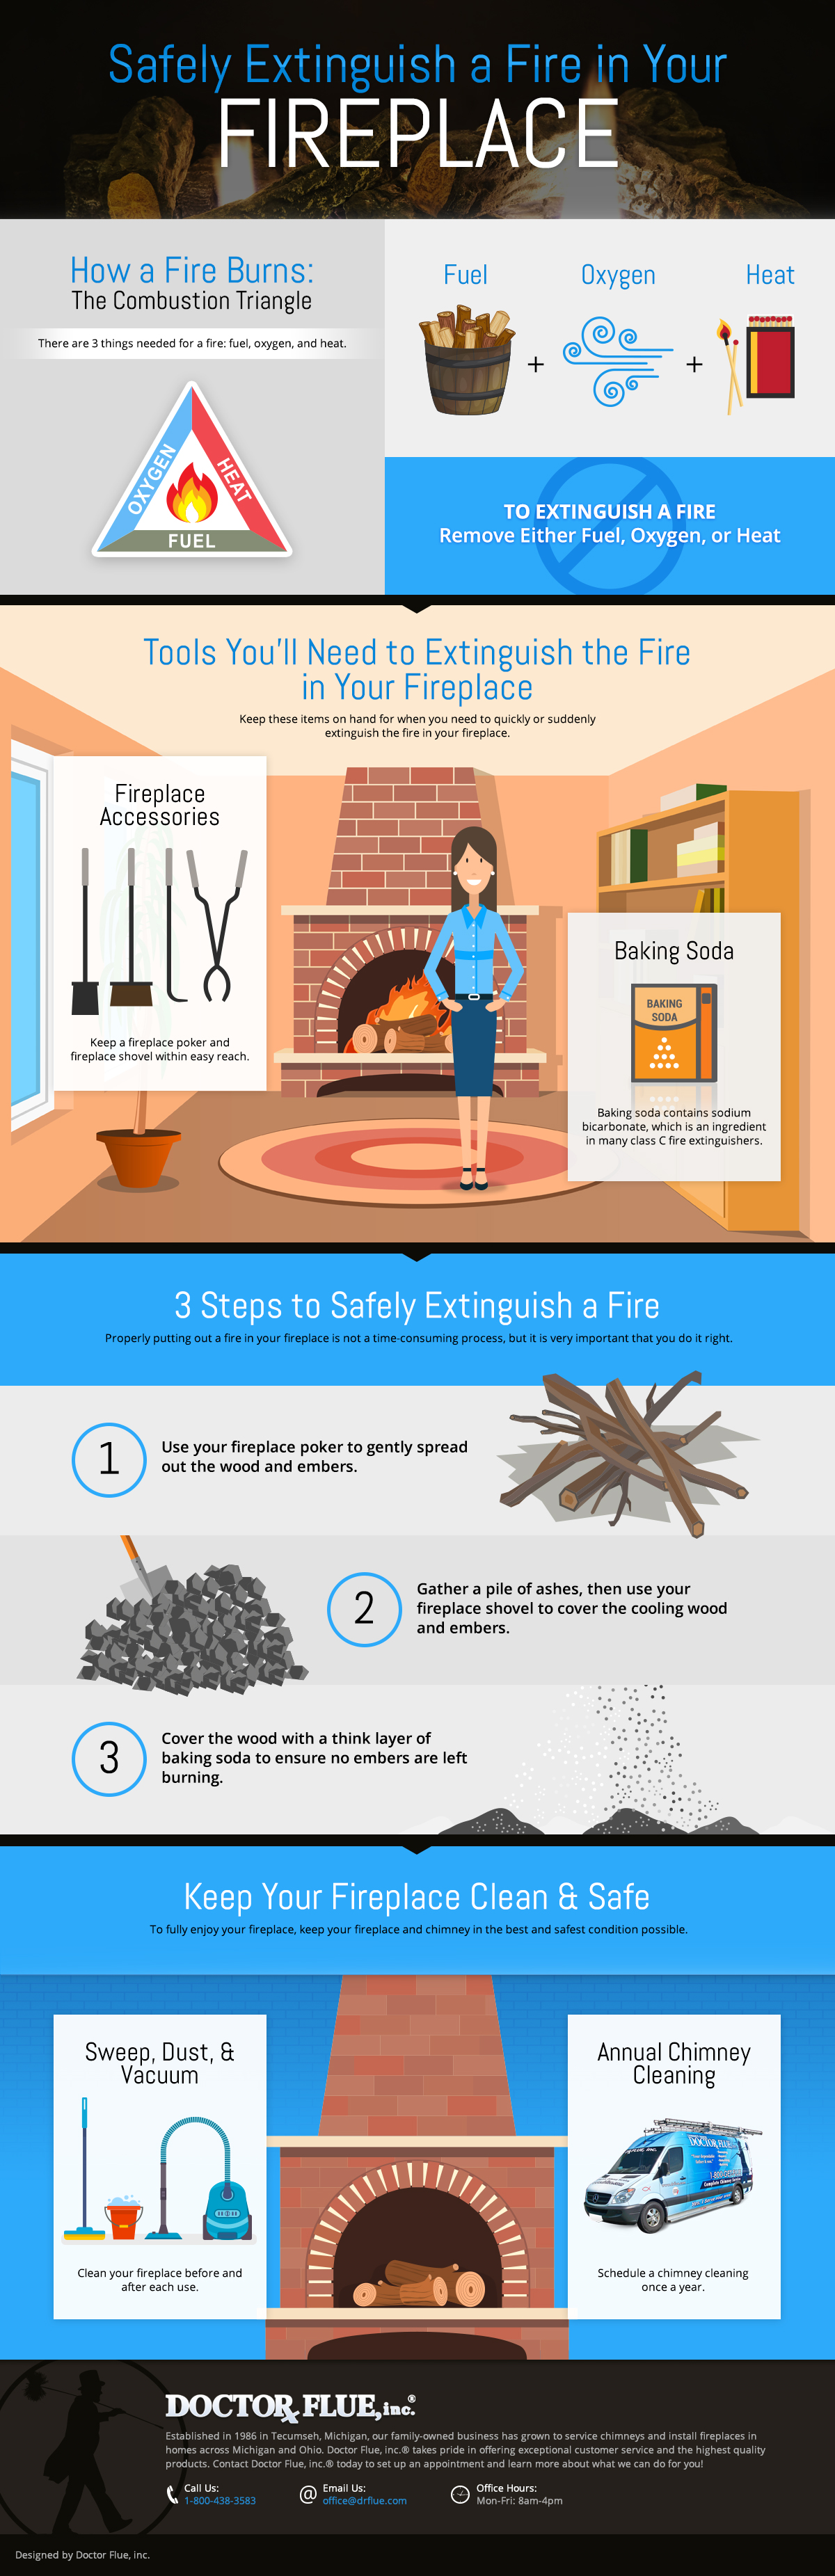 how to extinguish a fireplace fire ann arbor mi doctor flue